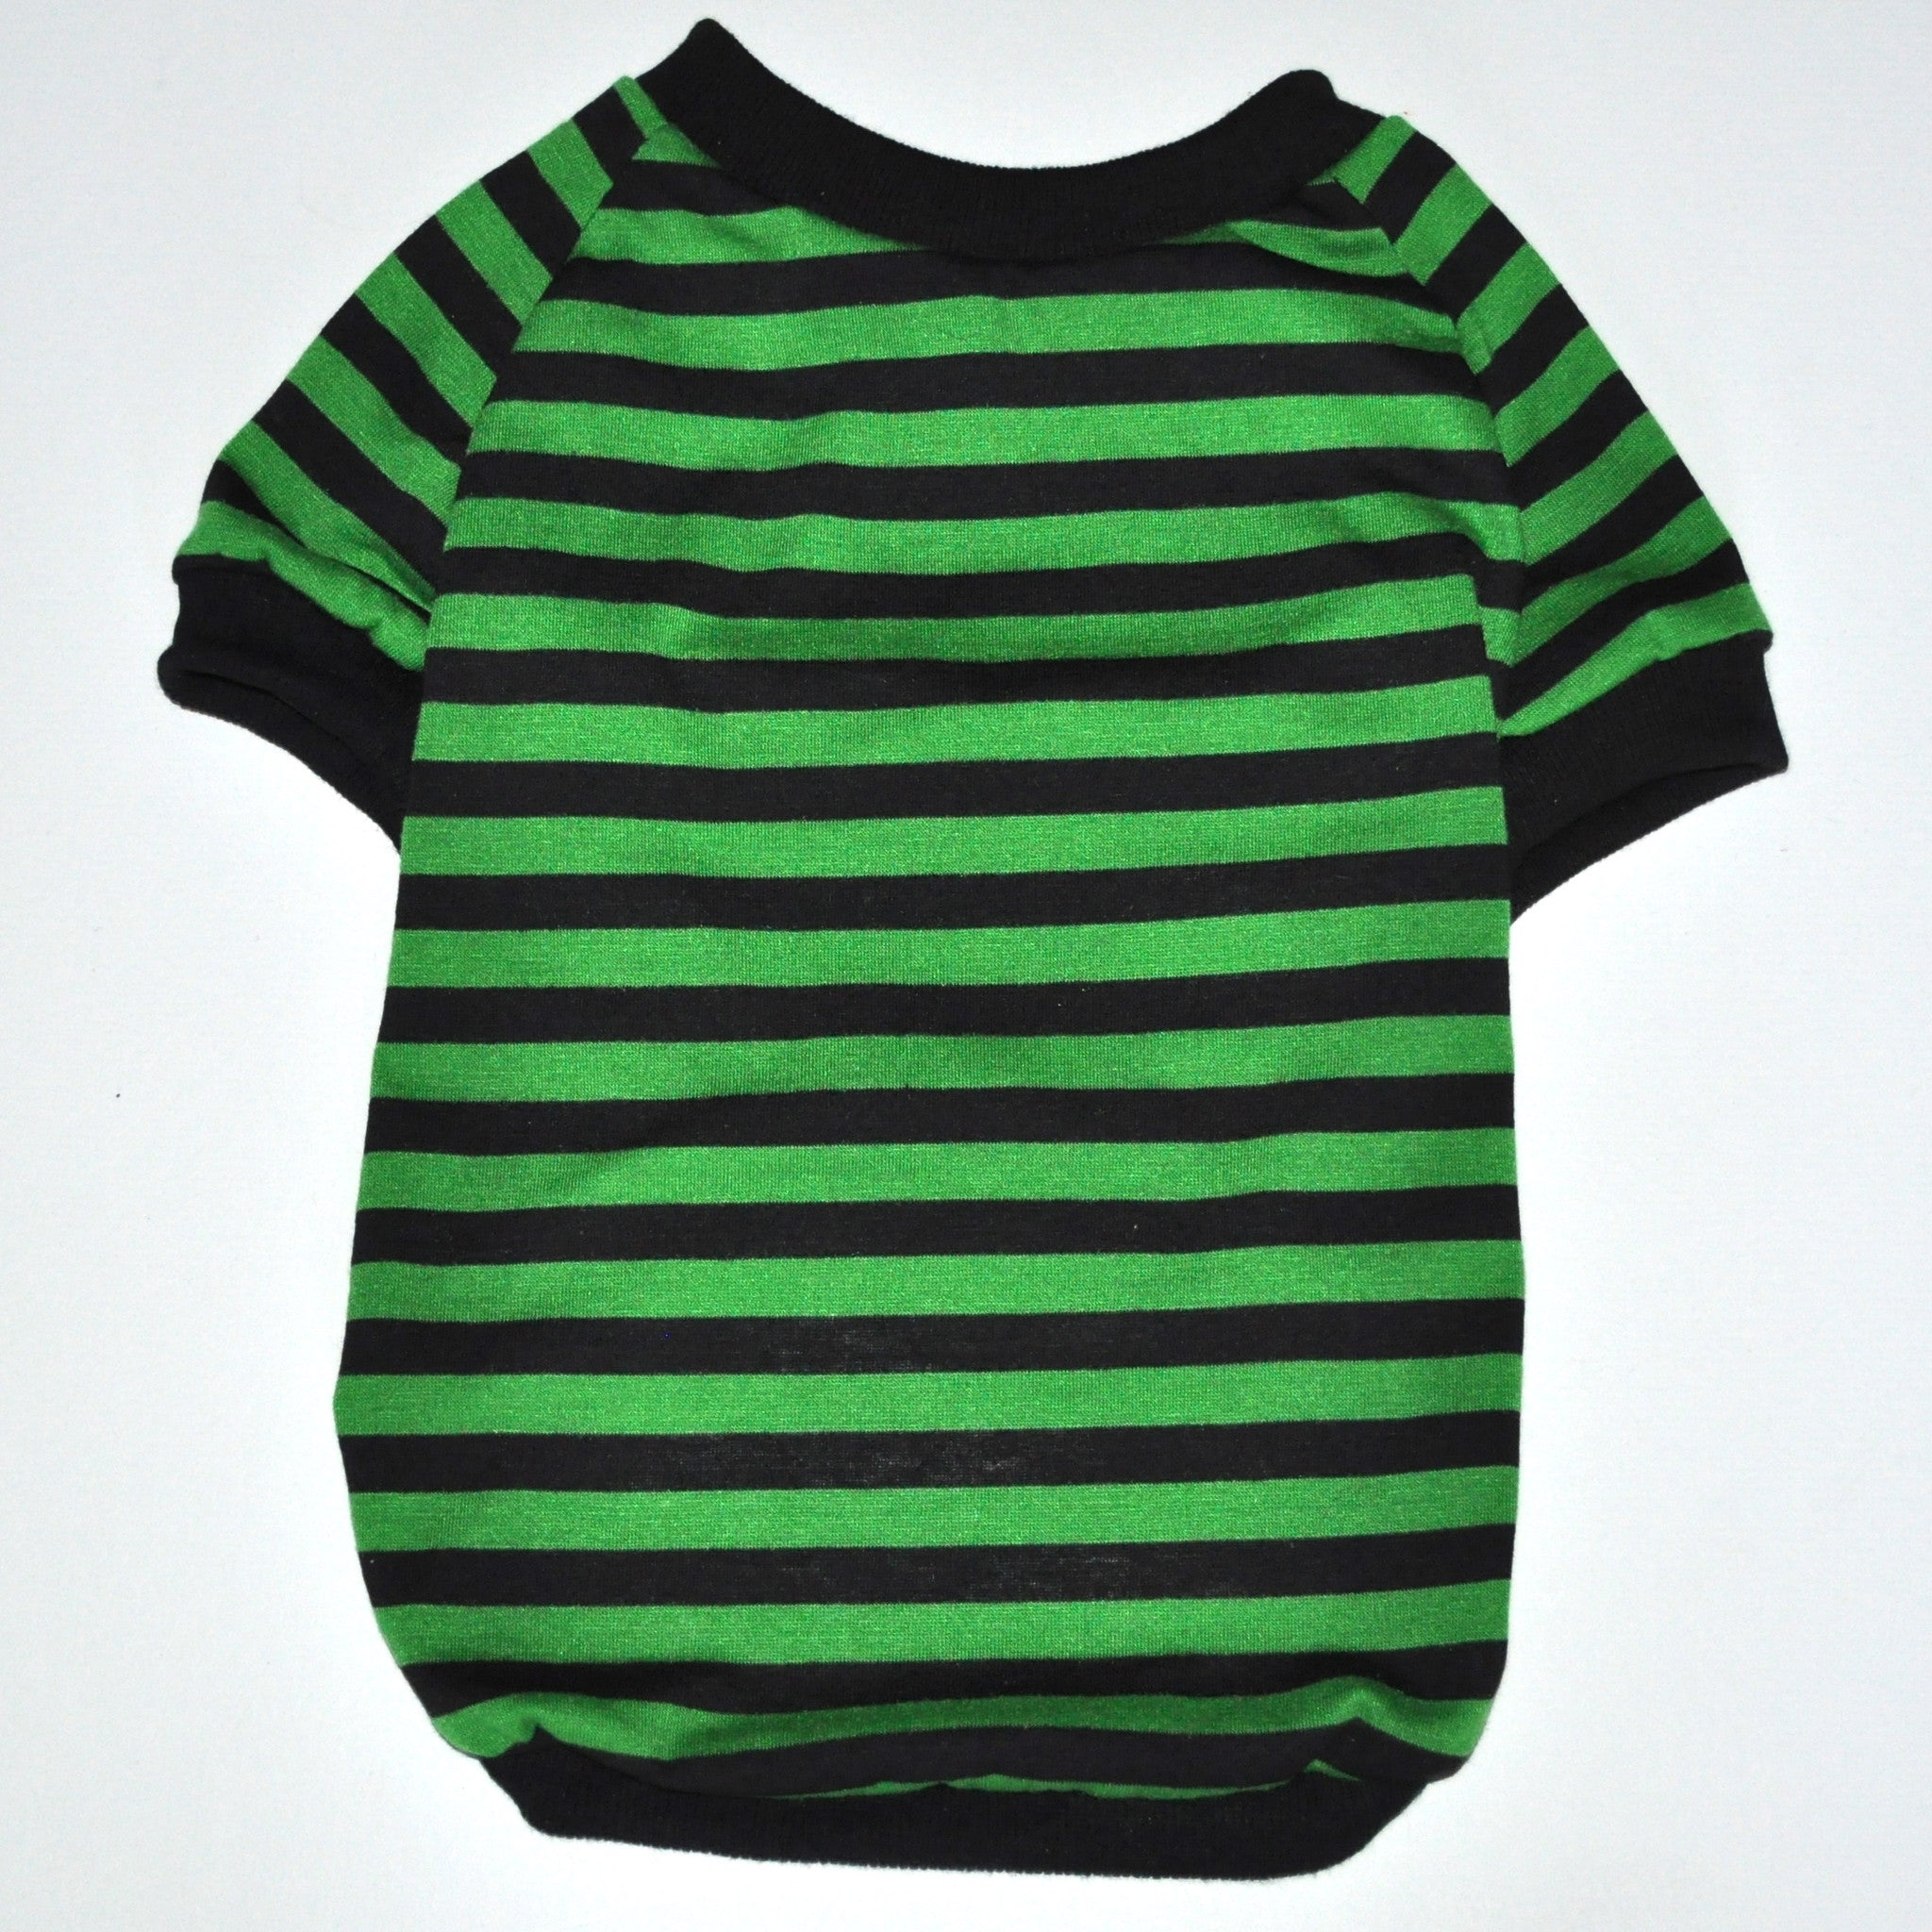 67c0b19595 Freddy Shirt Green/Black Stripes - Kane & Couture